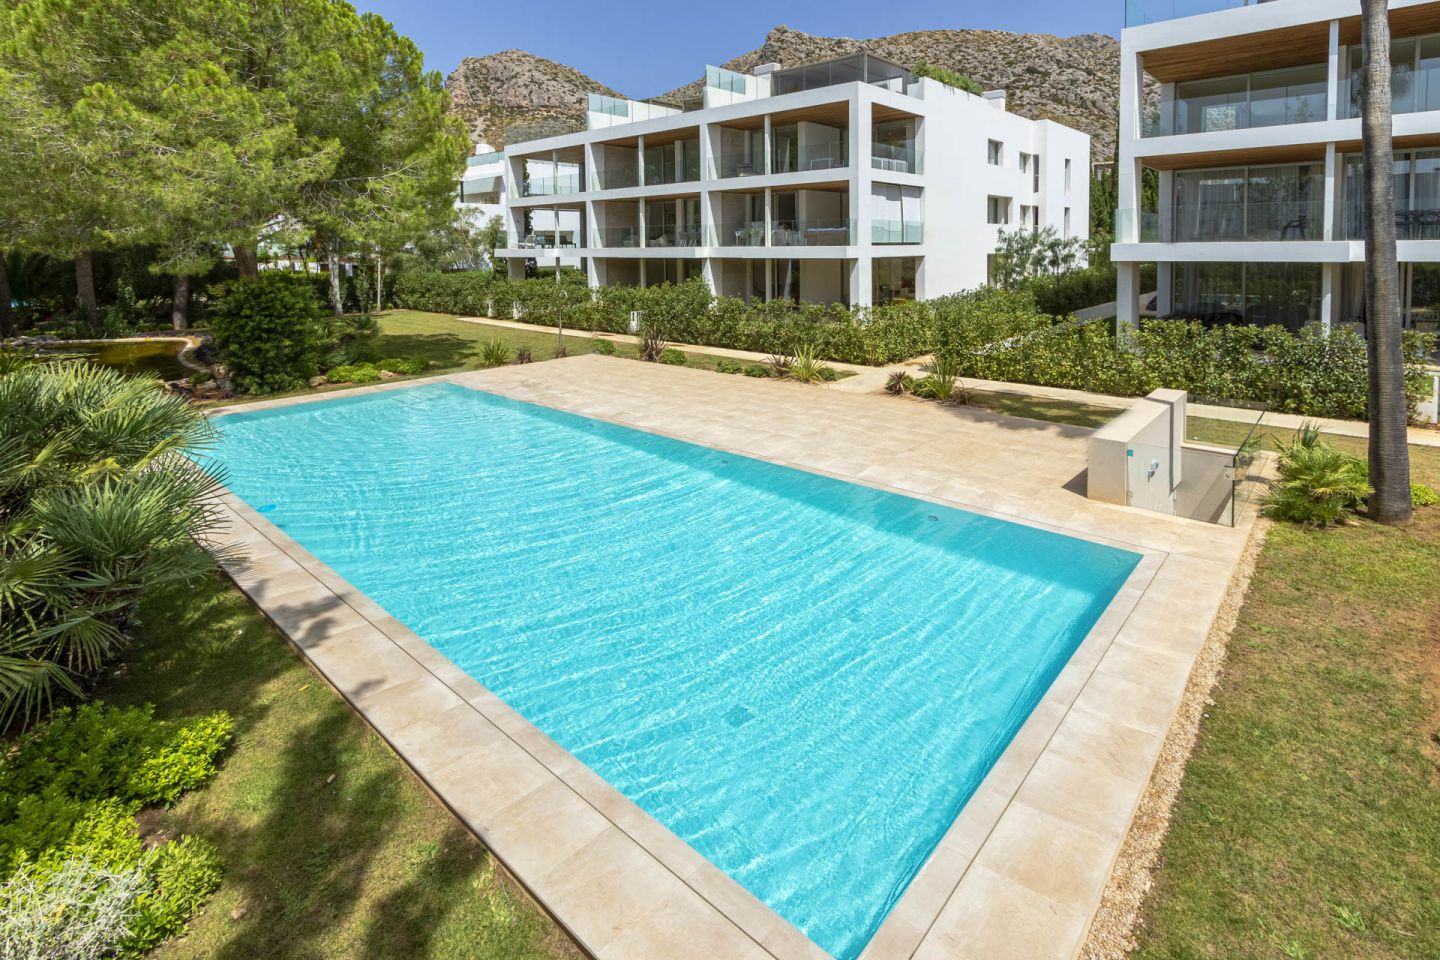 3 Bed Ground Floor for sale in PUERTO POLLENSA 0